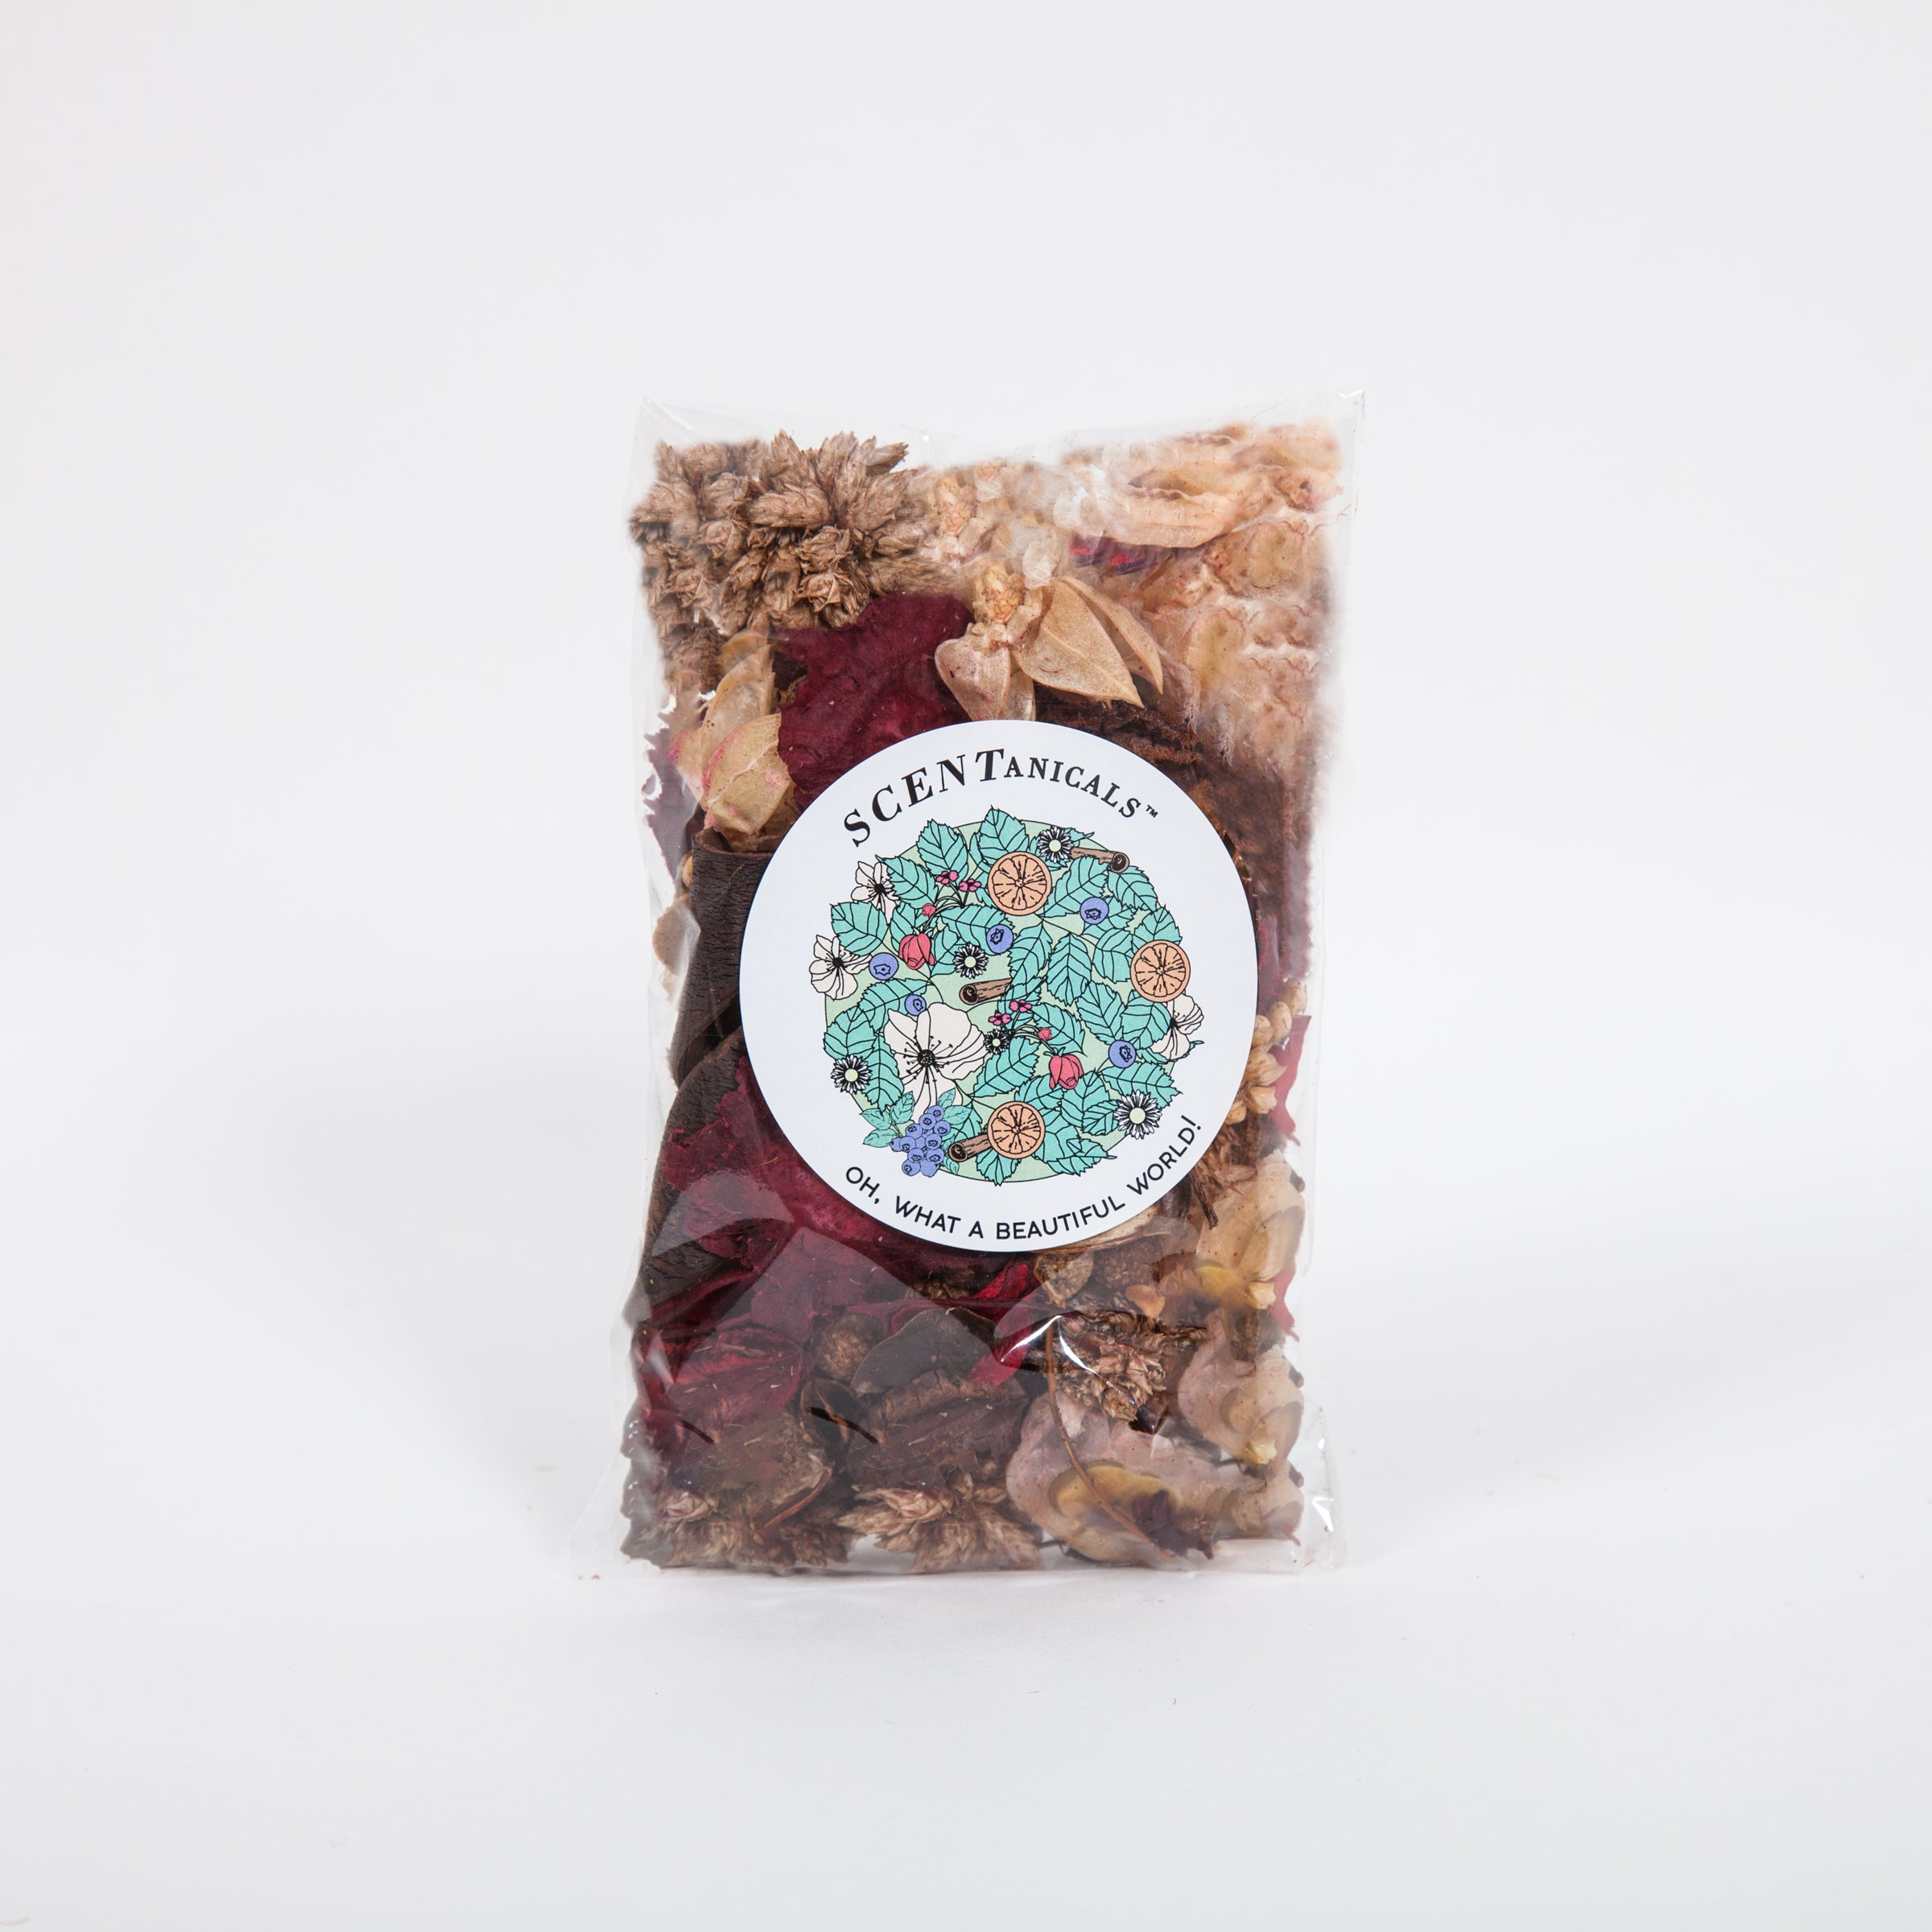 Every Day's A Gift - Scentanicals Scented Herbs & Botanicals